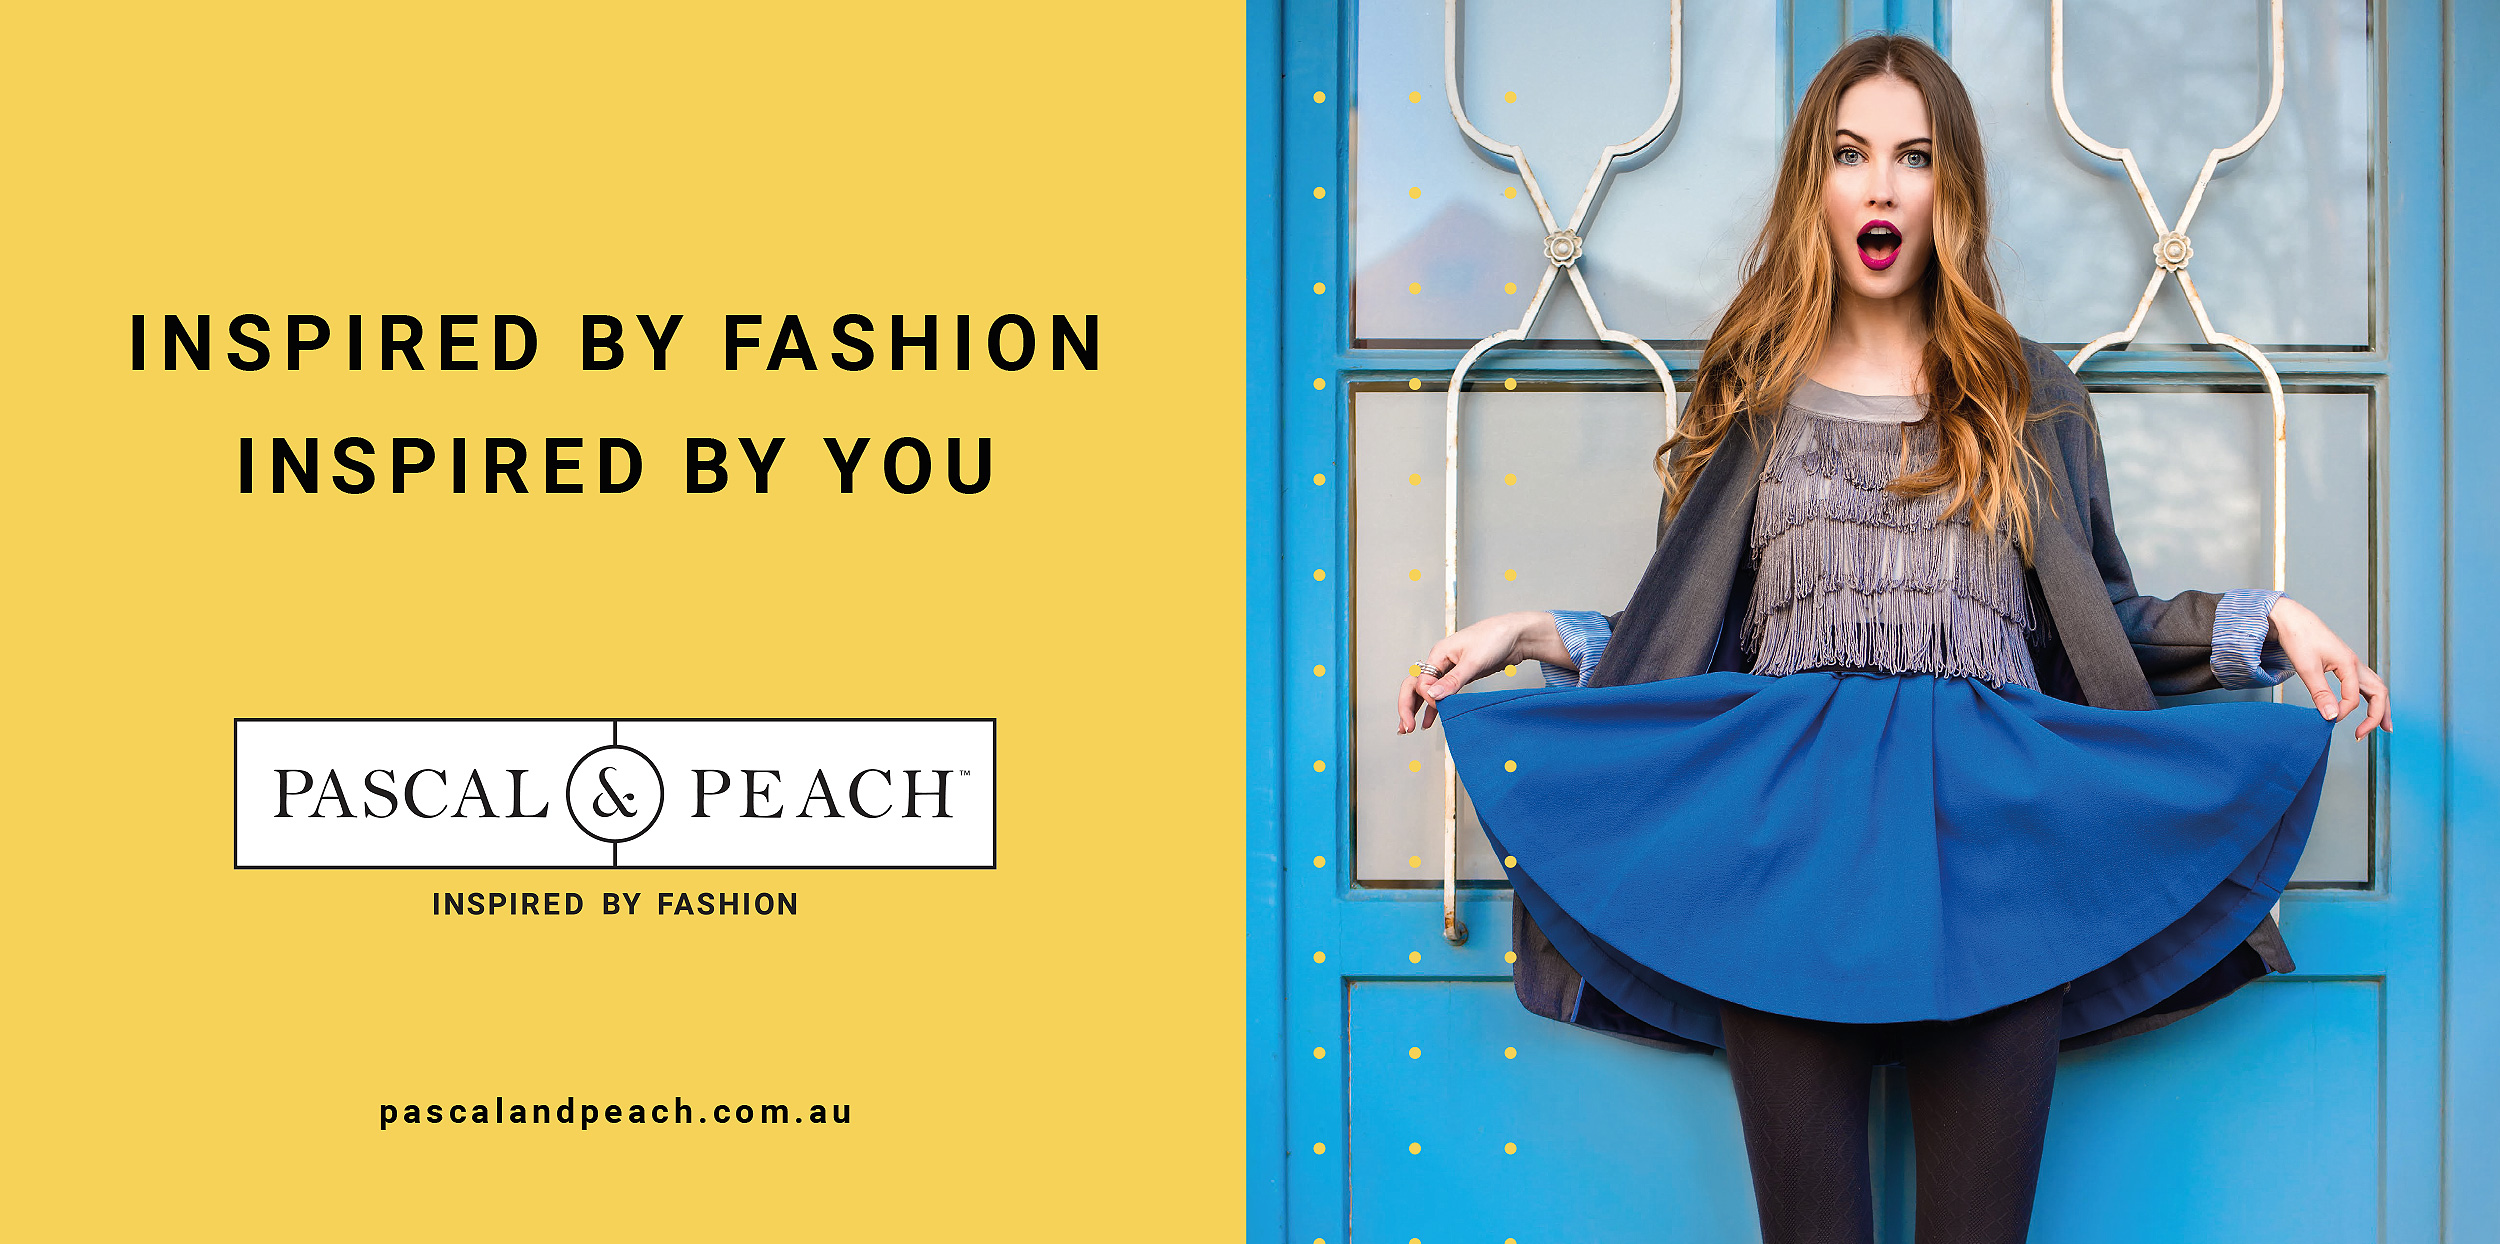 Pascal-and-Peach-Fashion-Branding-Parramatta-Design-Handle-Sydney_21.jpg